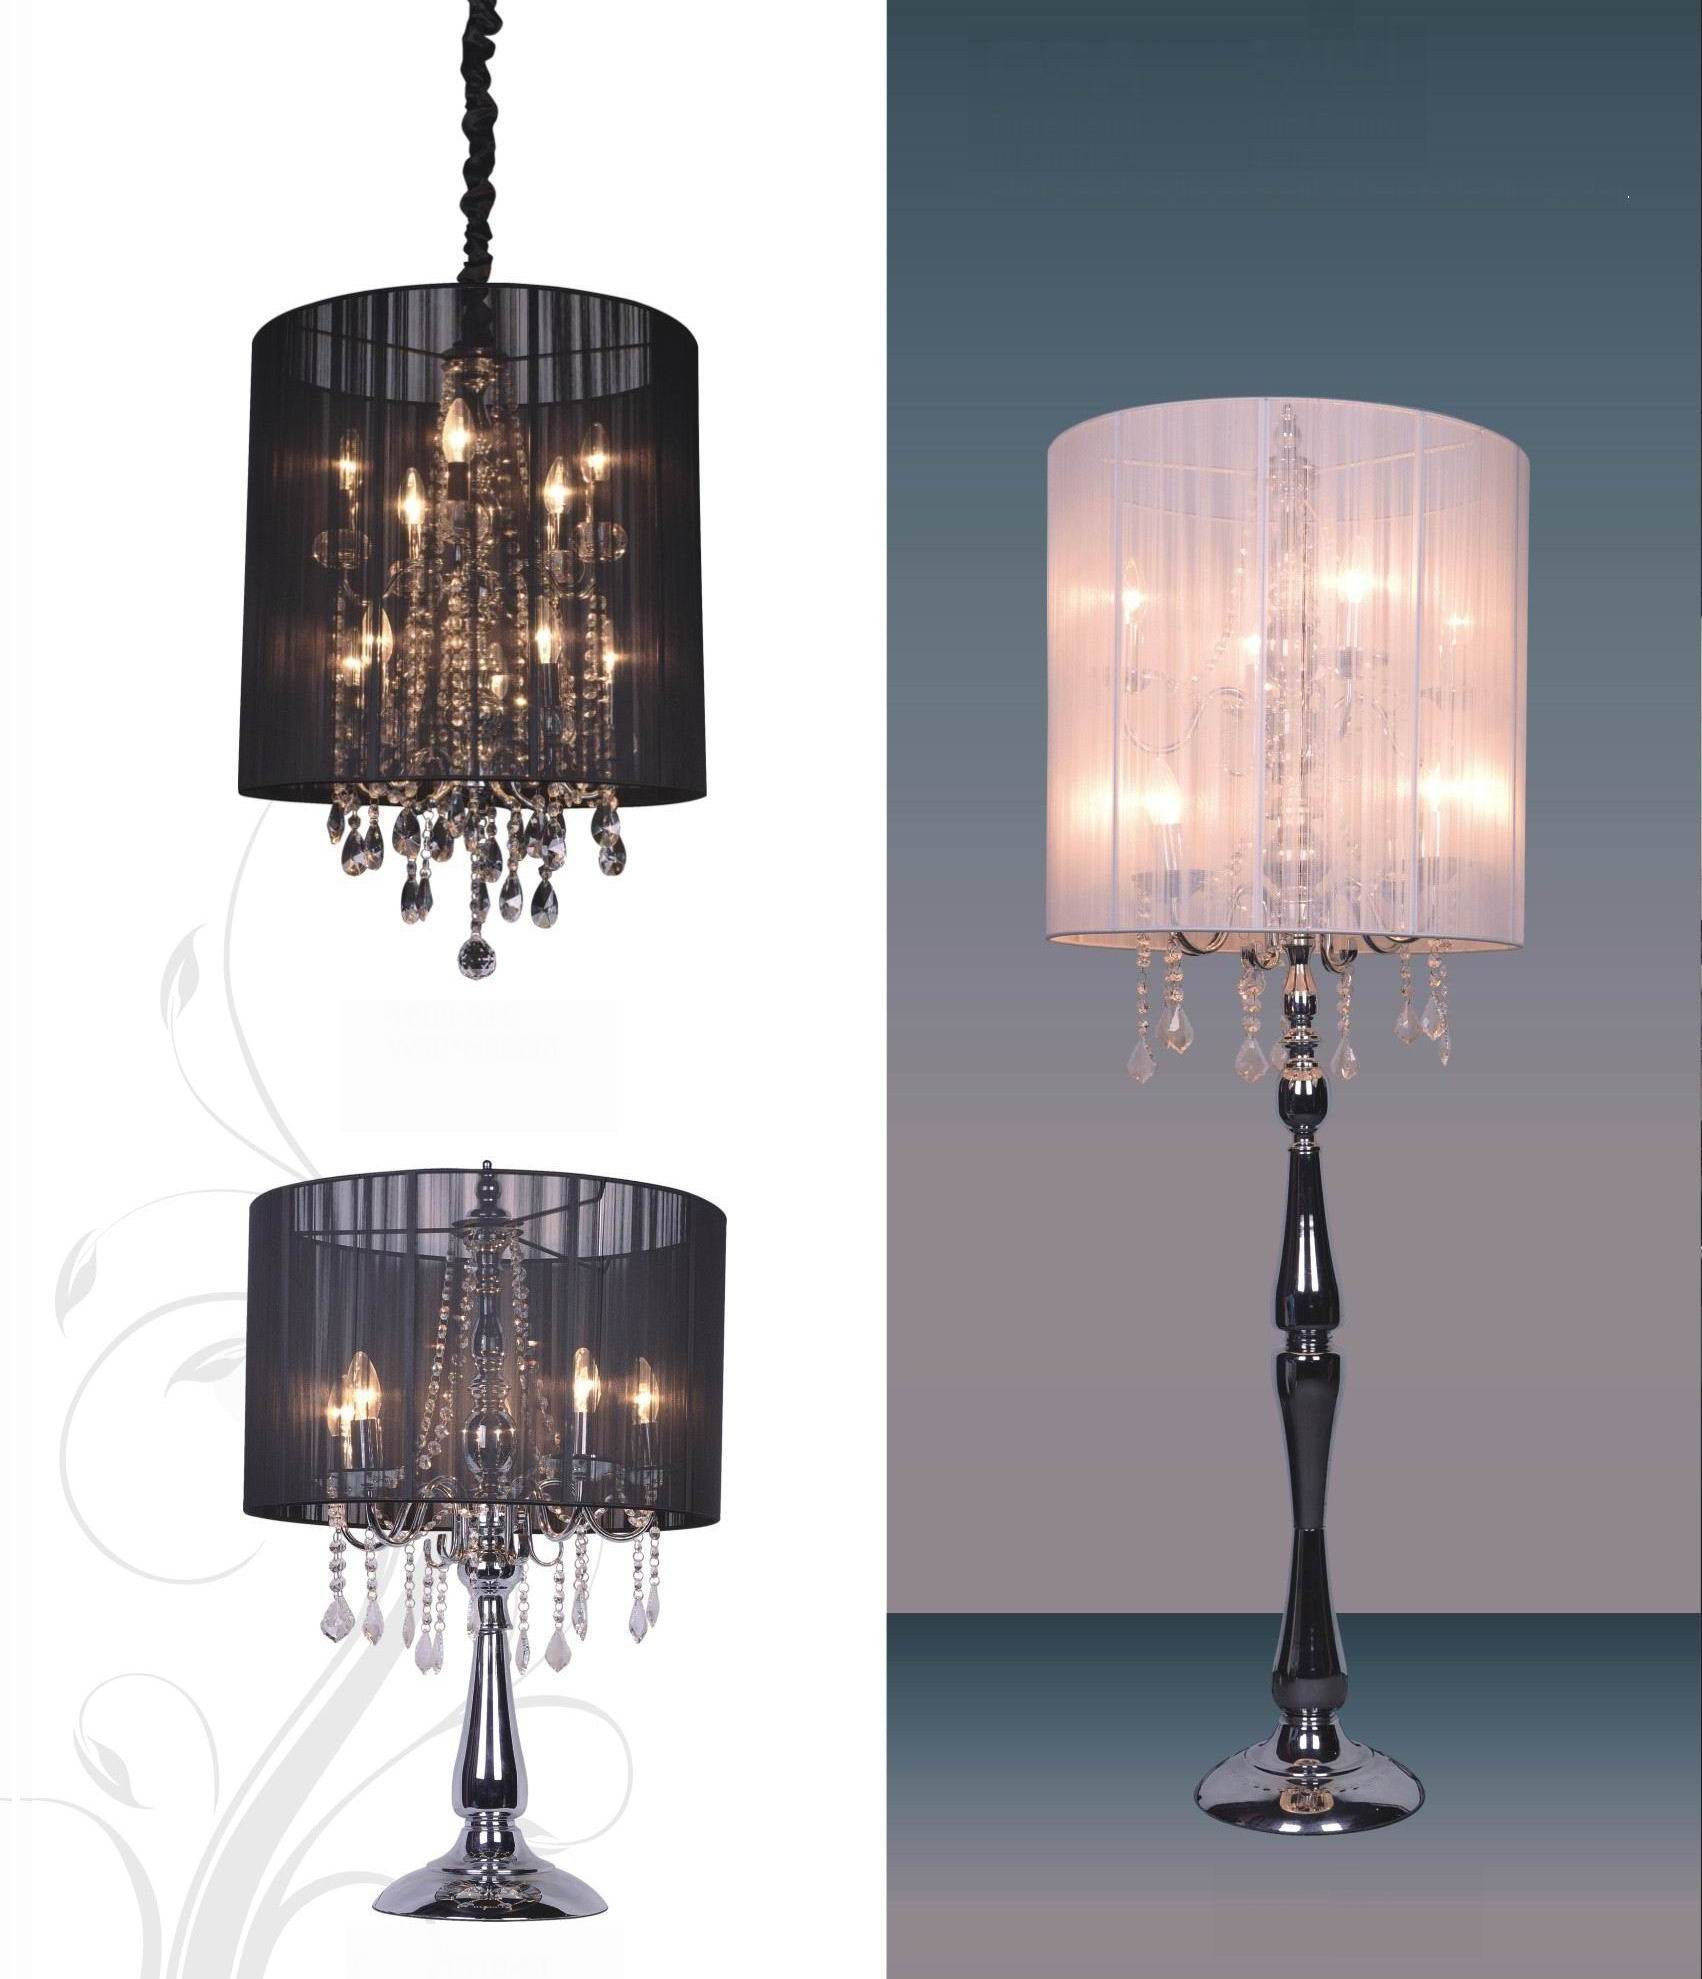 crystal-chandelier-table-lamps-photo-8